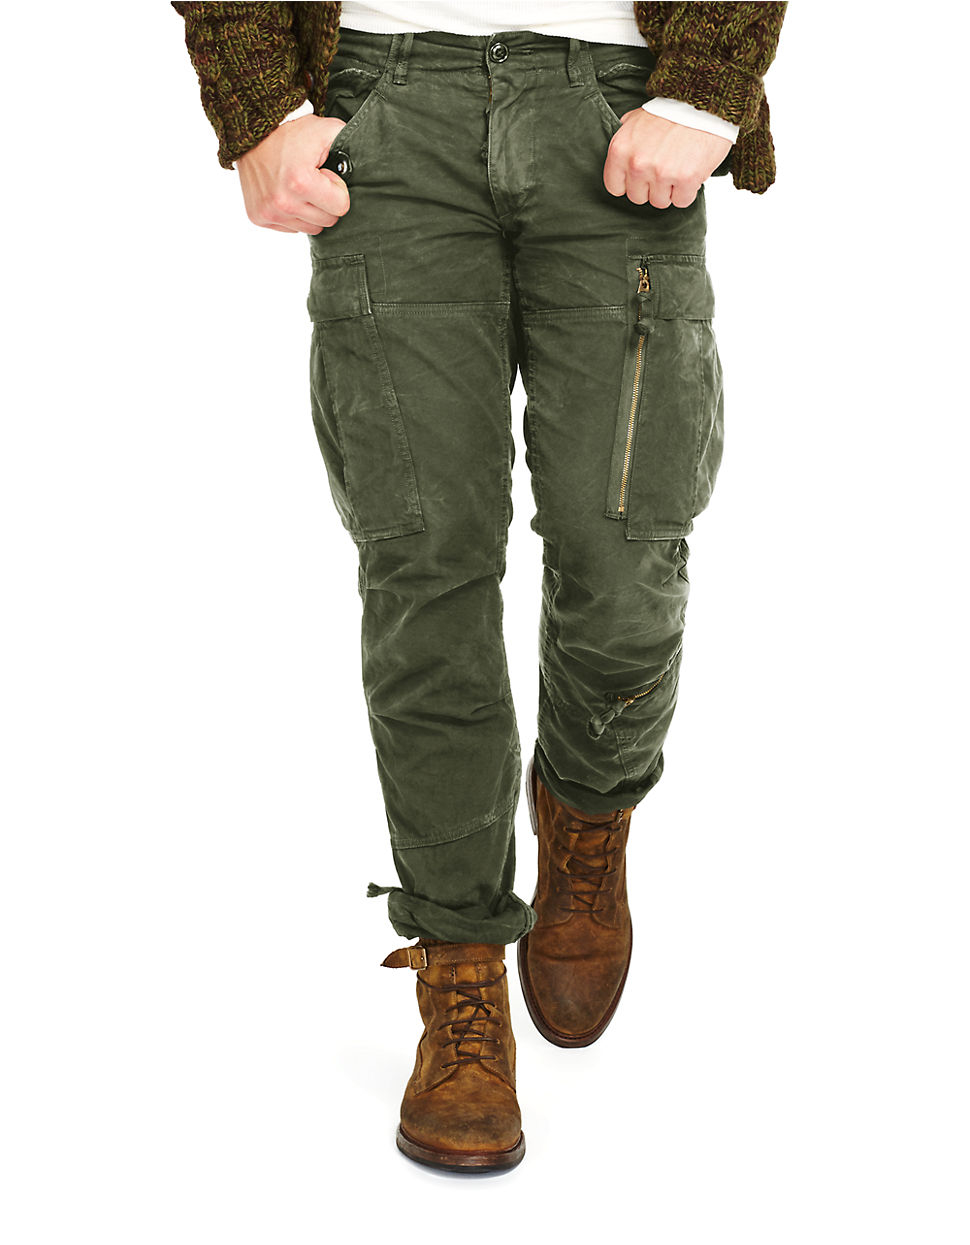 ralph lauren cargo pants womens photo - 1